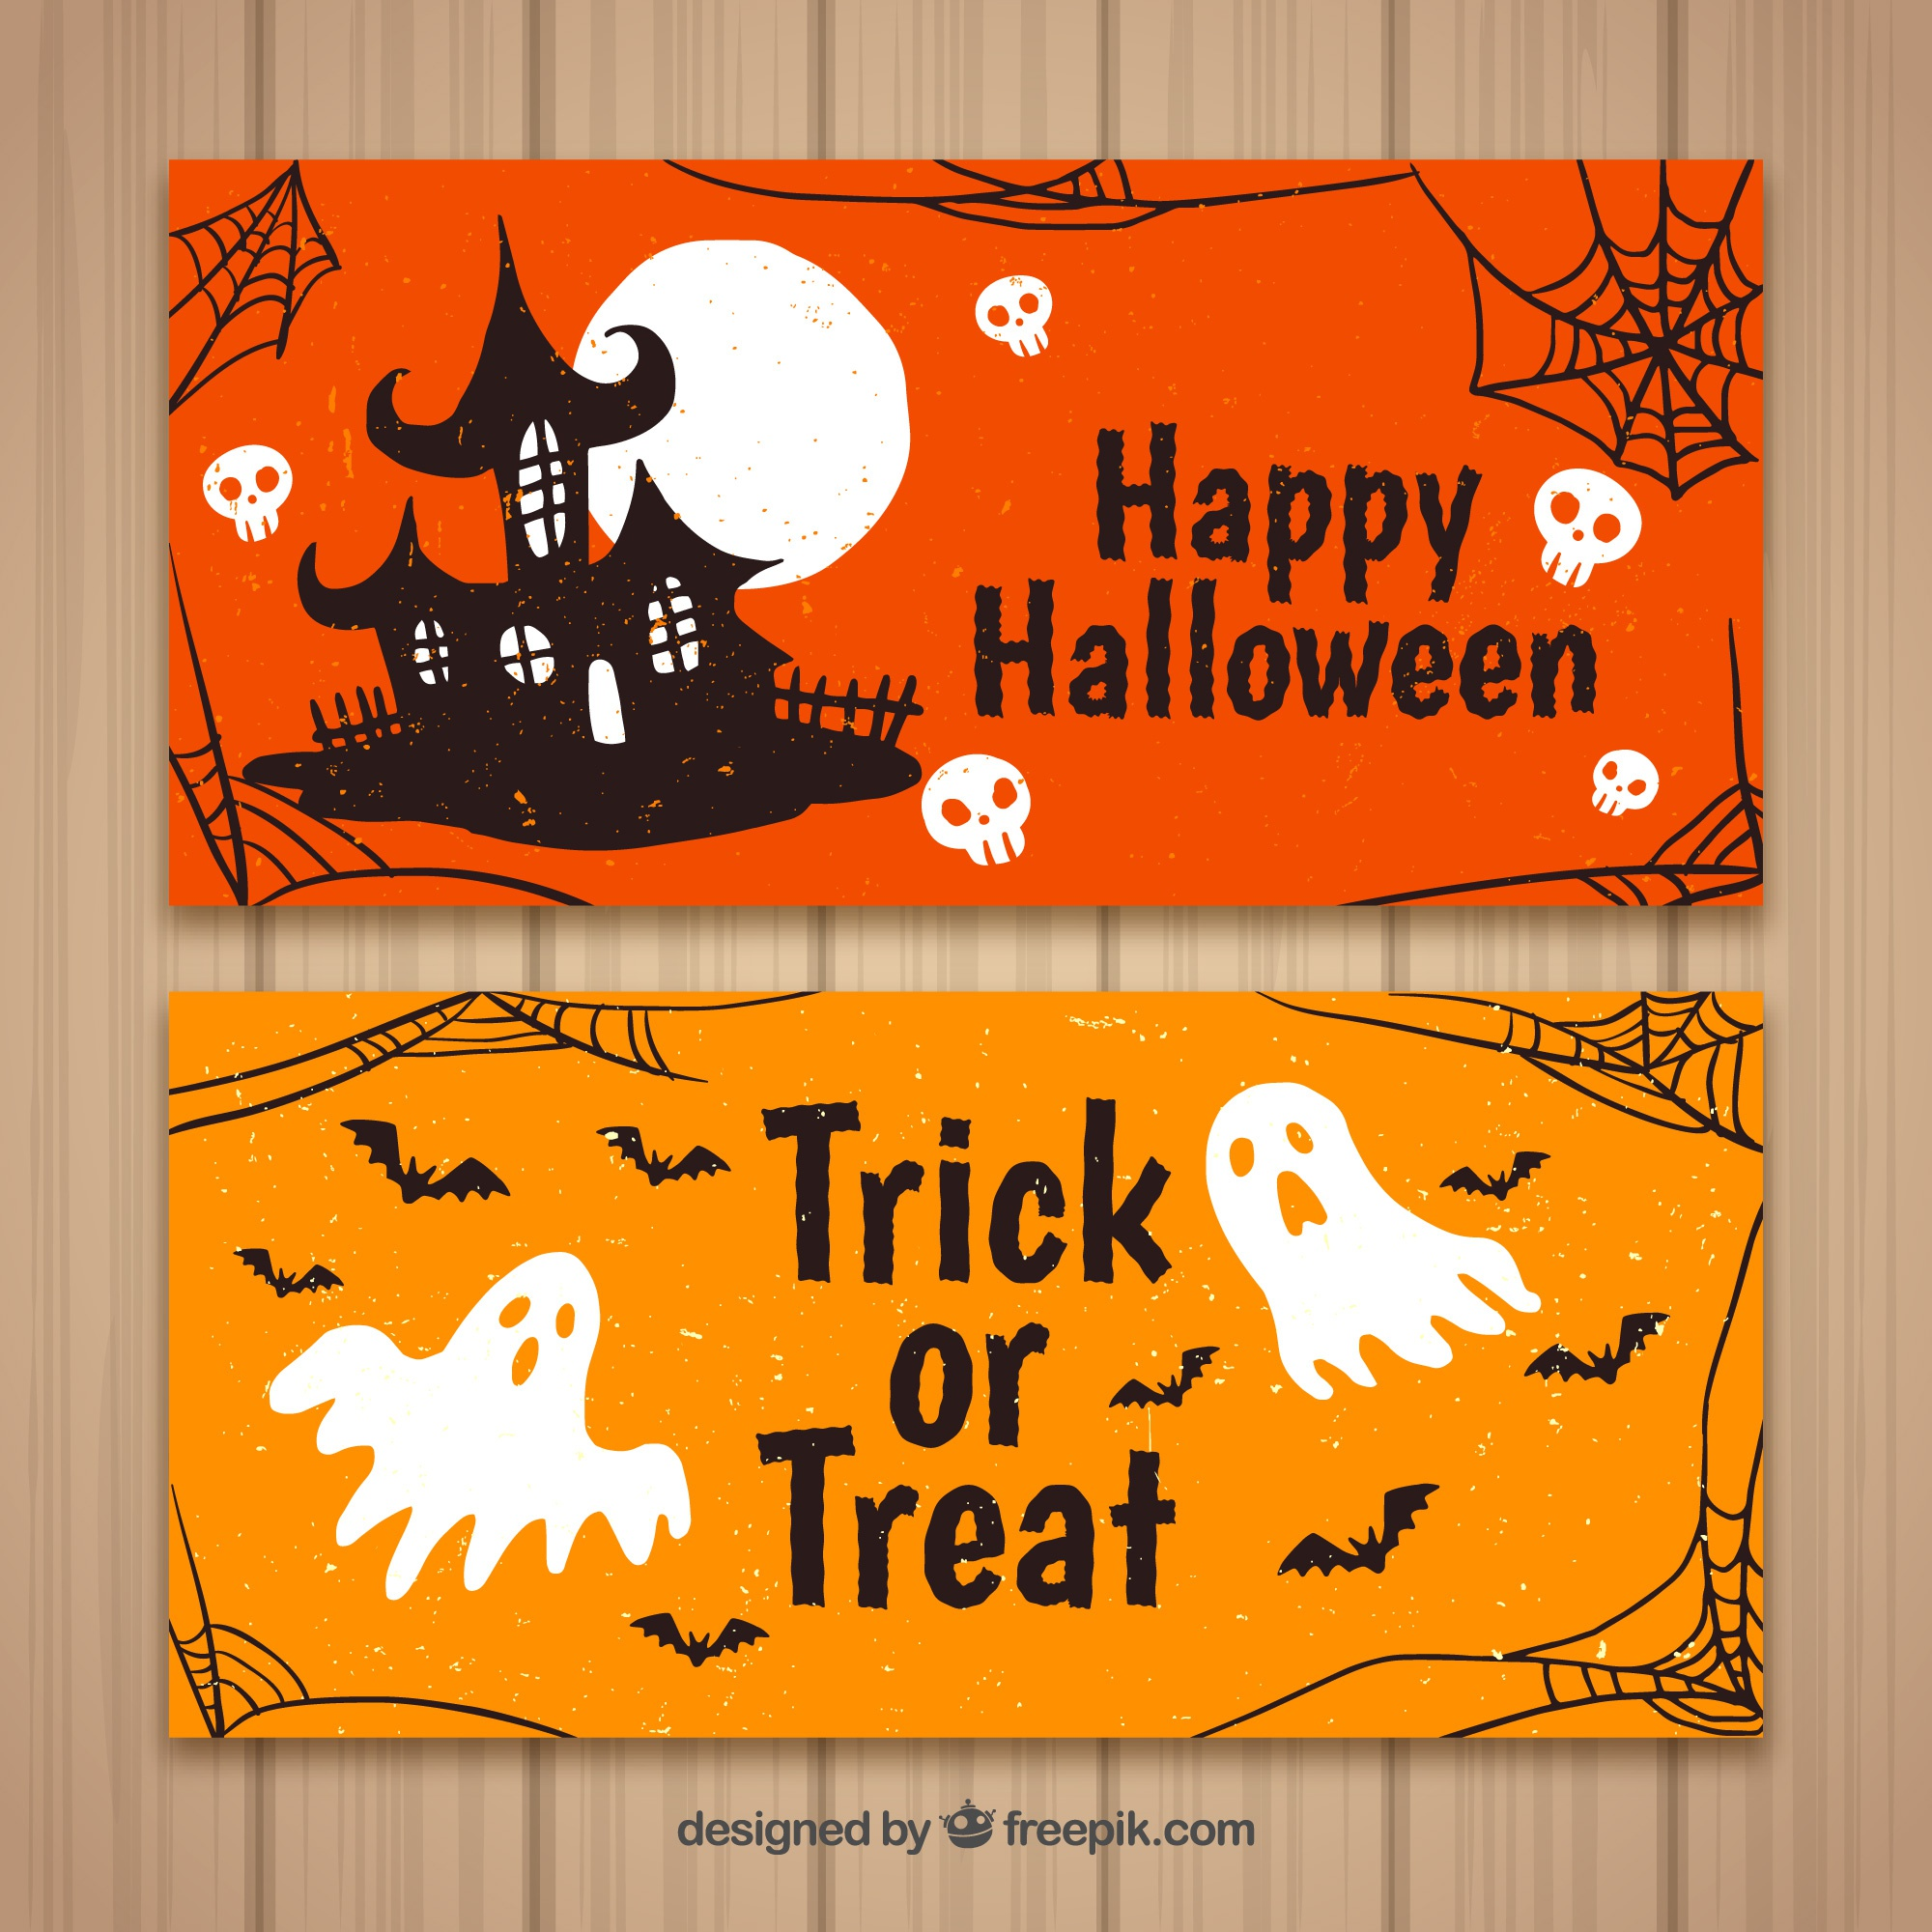 Halloween banners with house and ghosts